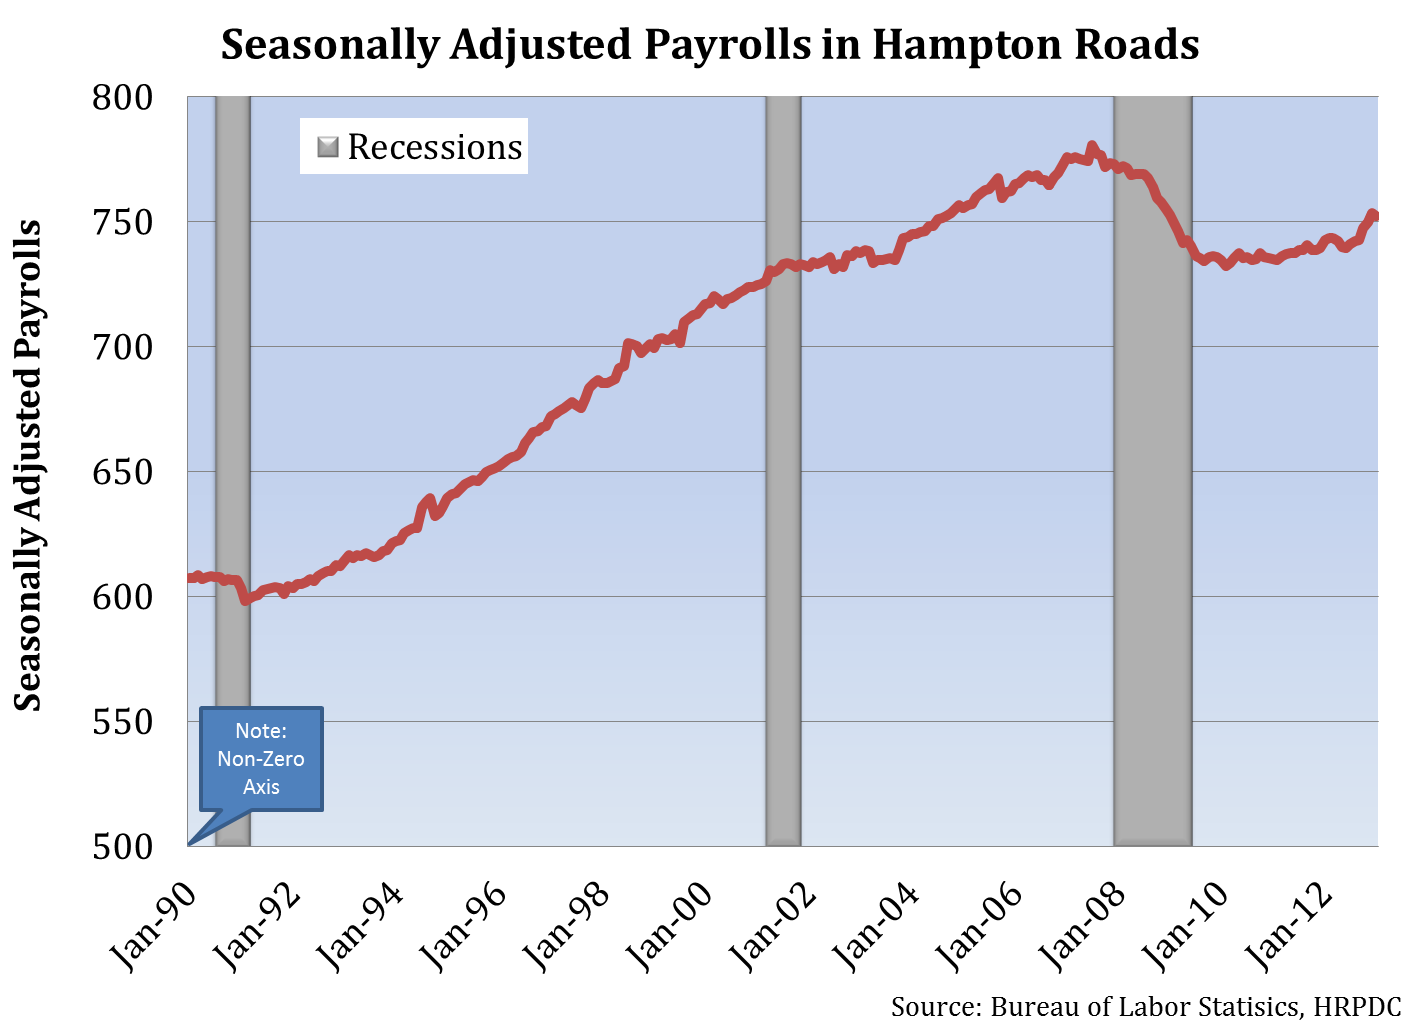 Seasonally Adjusted Payrolls in Hampton Roads